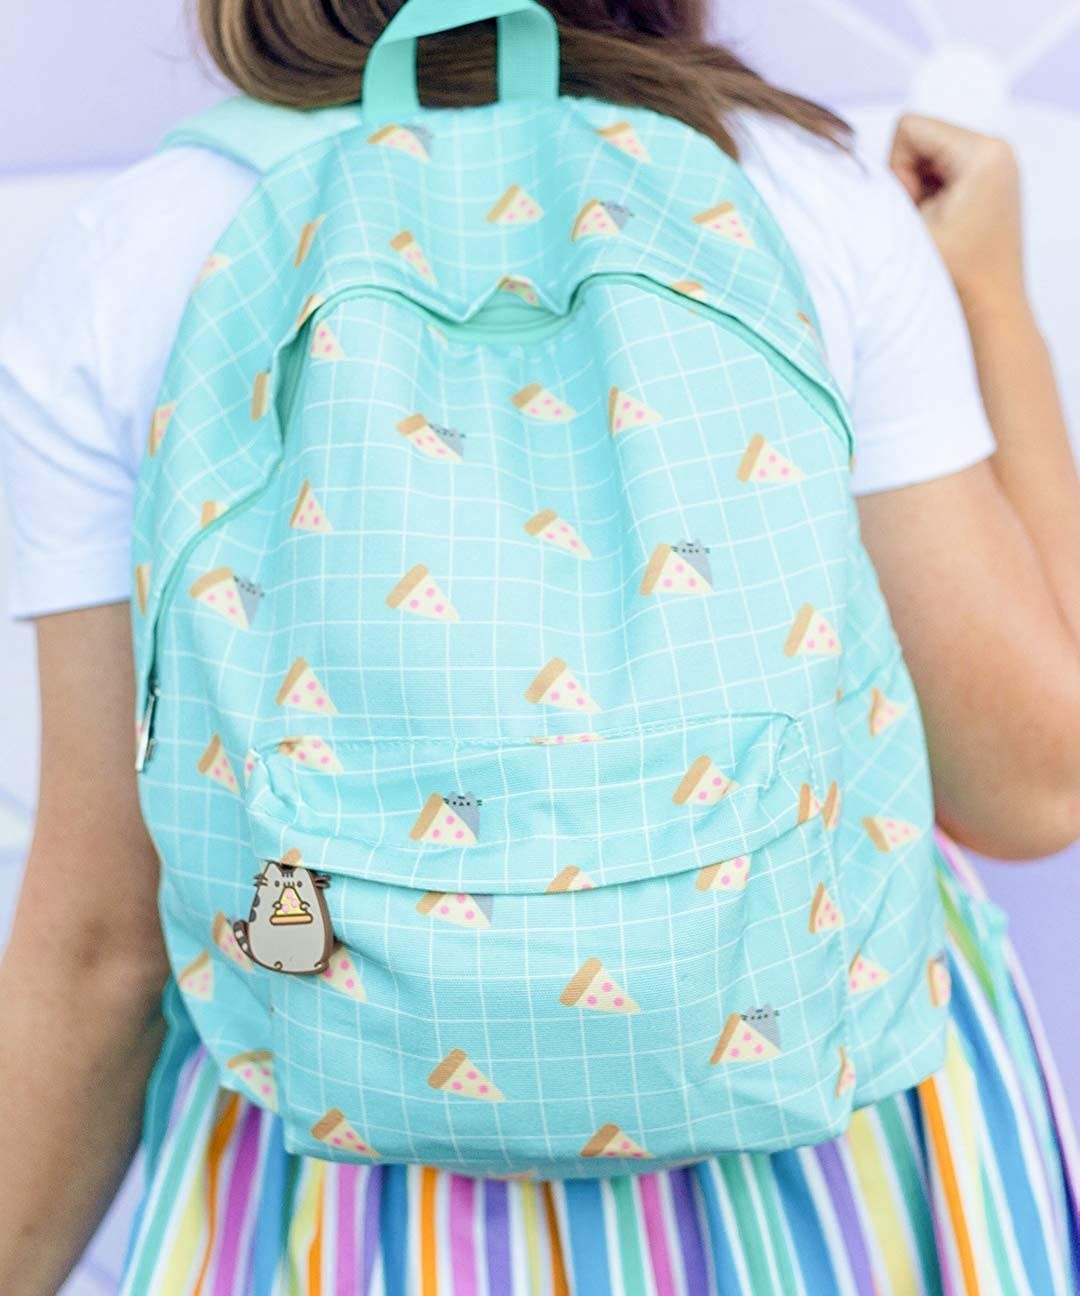 The mint and white grid print backpack printed with pizza slices and Pusheen, with a Pusheen eating pizza zipper pull on the front pouch